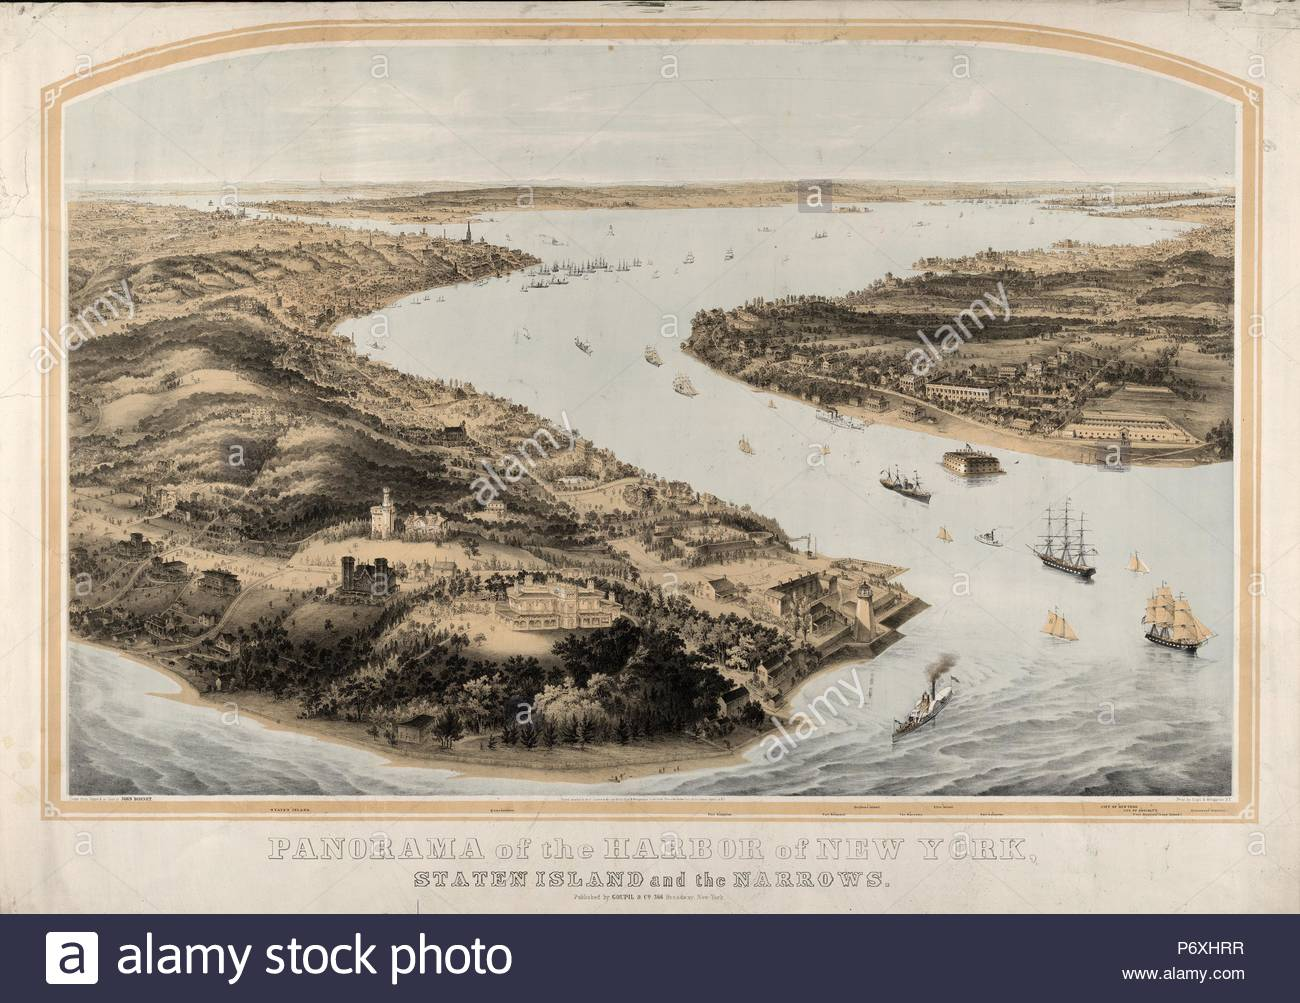 Panorama of the harbor of New York, Staten Island and the narrows; Nagel & Weingärtner, printmaker; New York : Goupil & Co., 1854.; 1 print : lithograph, 2 color ; 40 7/8 x 29 1/2 in. - Stock Image